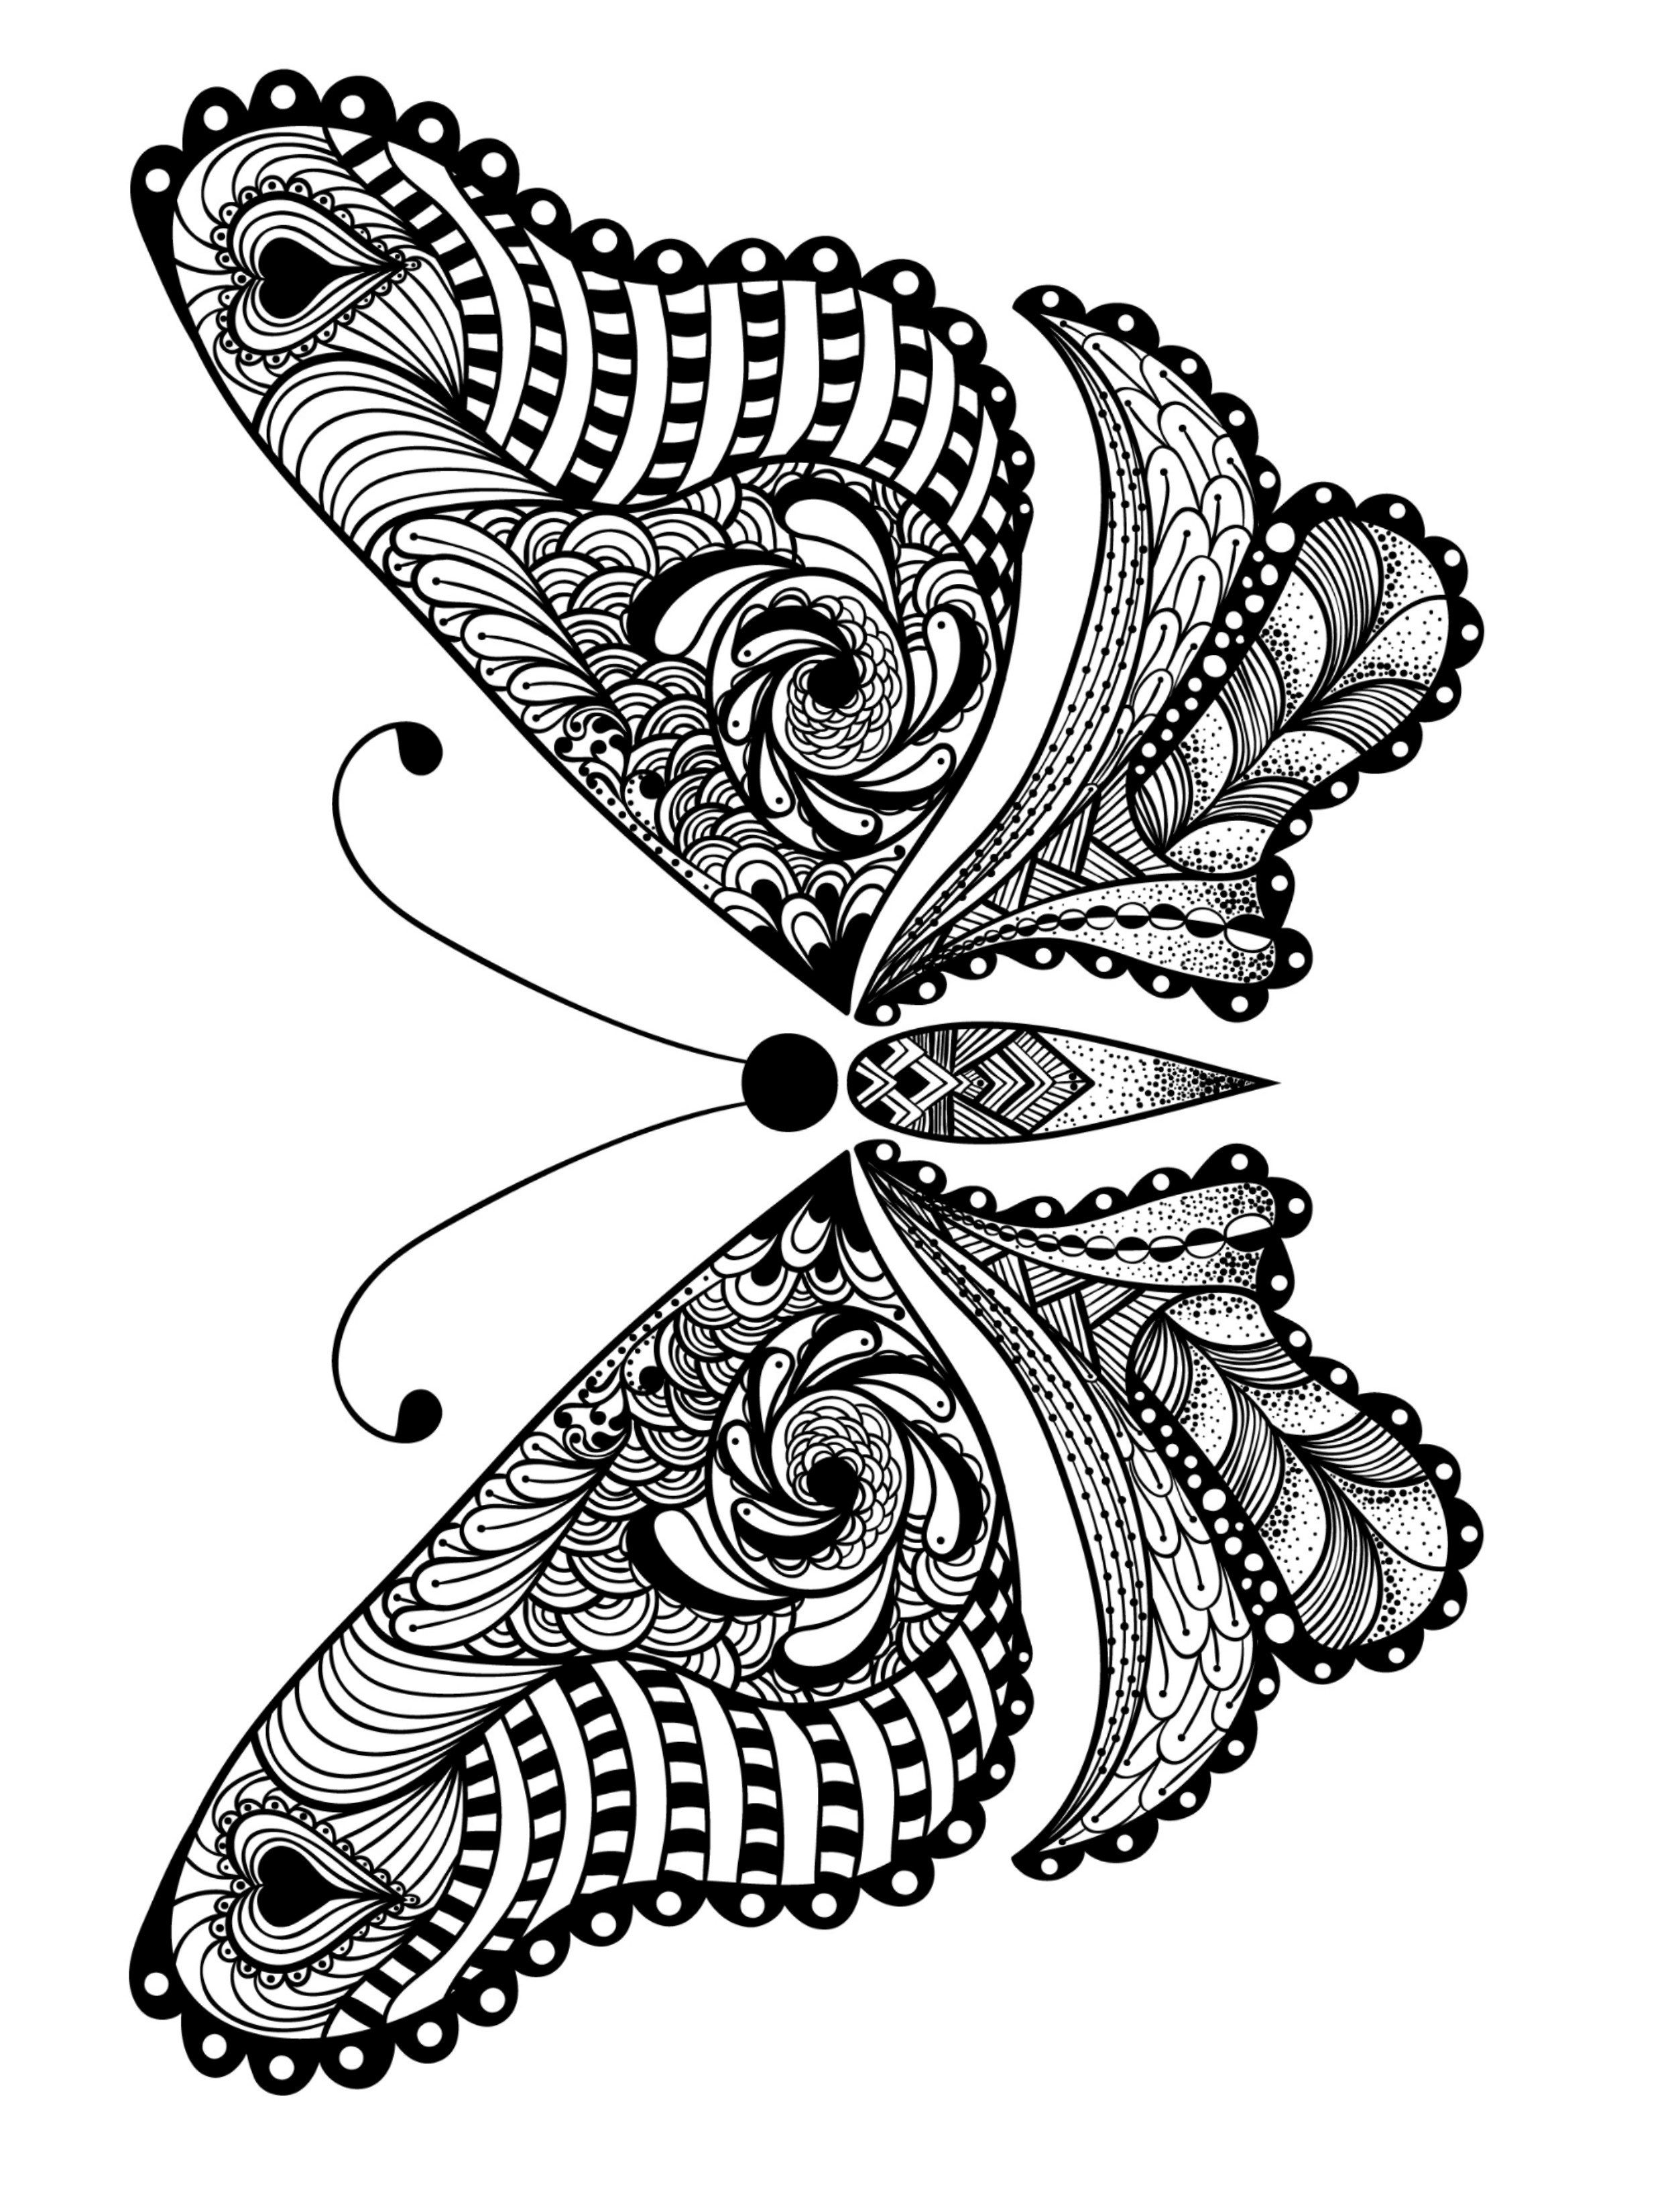 Free coloring pages butterfly - 23 Free Printable Insect Animal Adult Coloring Pages